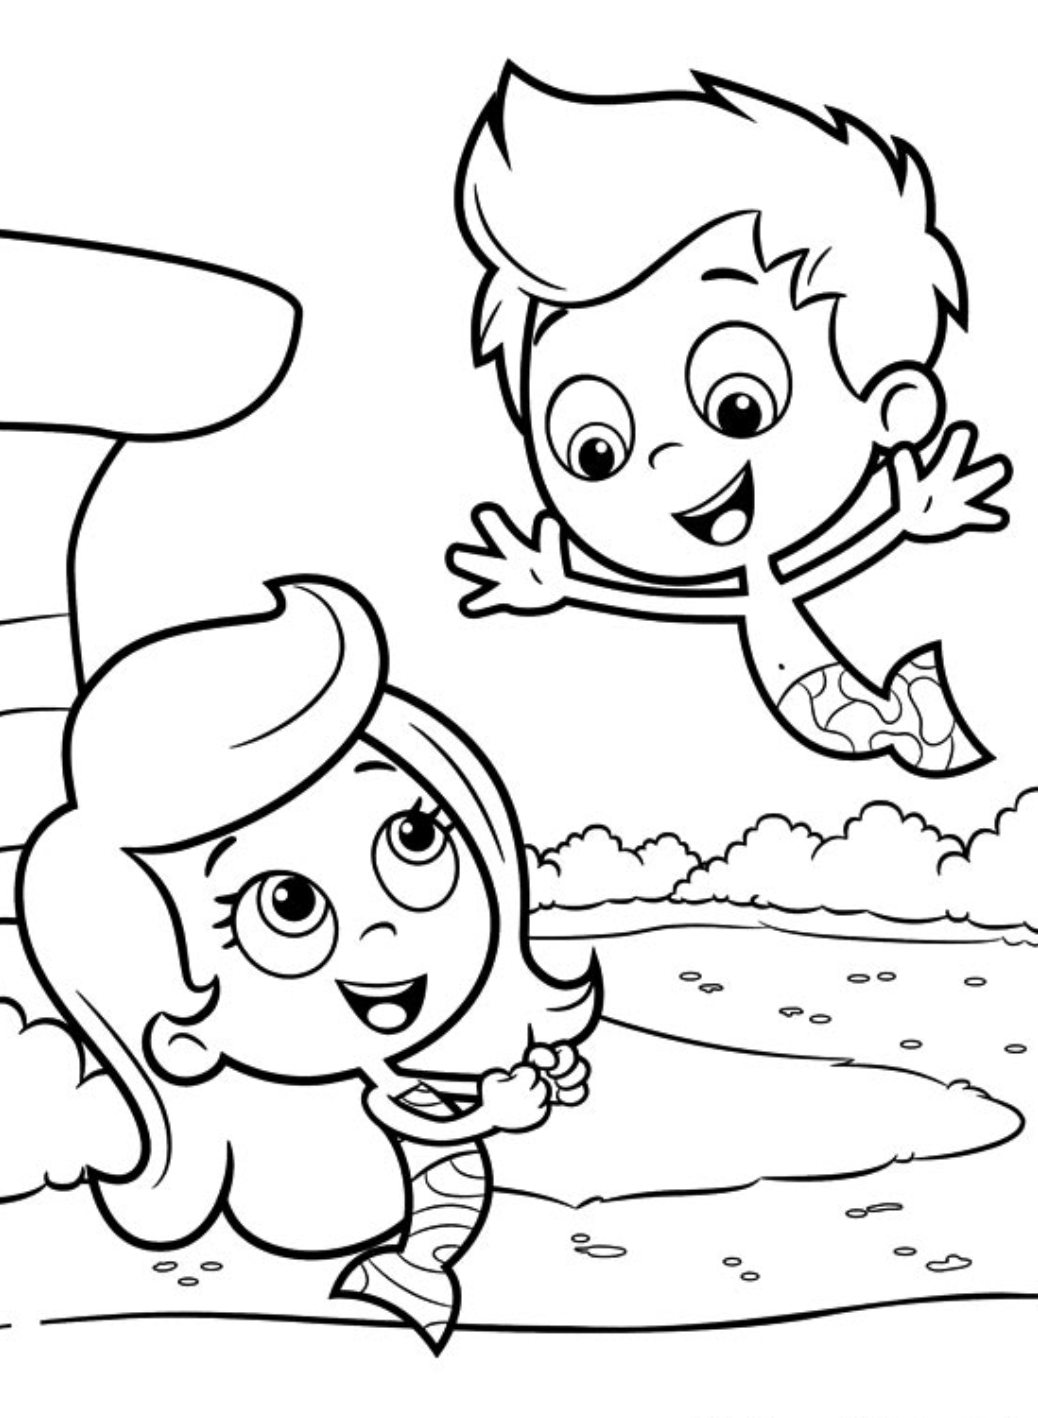 Bubble Guppies Coloring Book. student bubble guppies coloring sheets ...